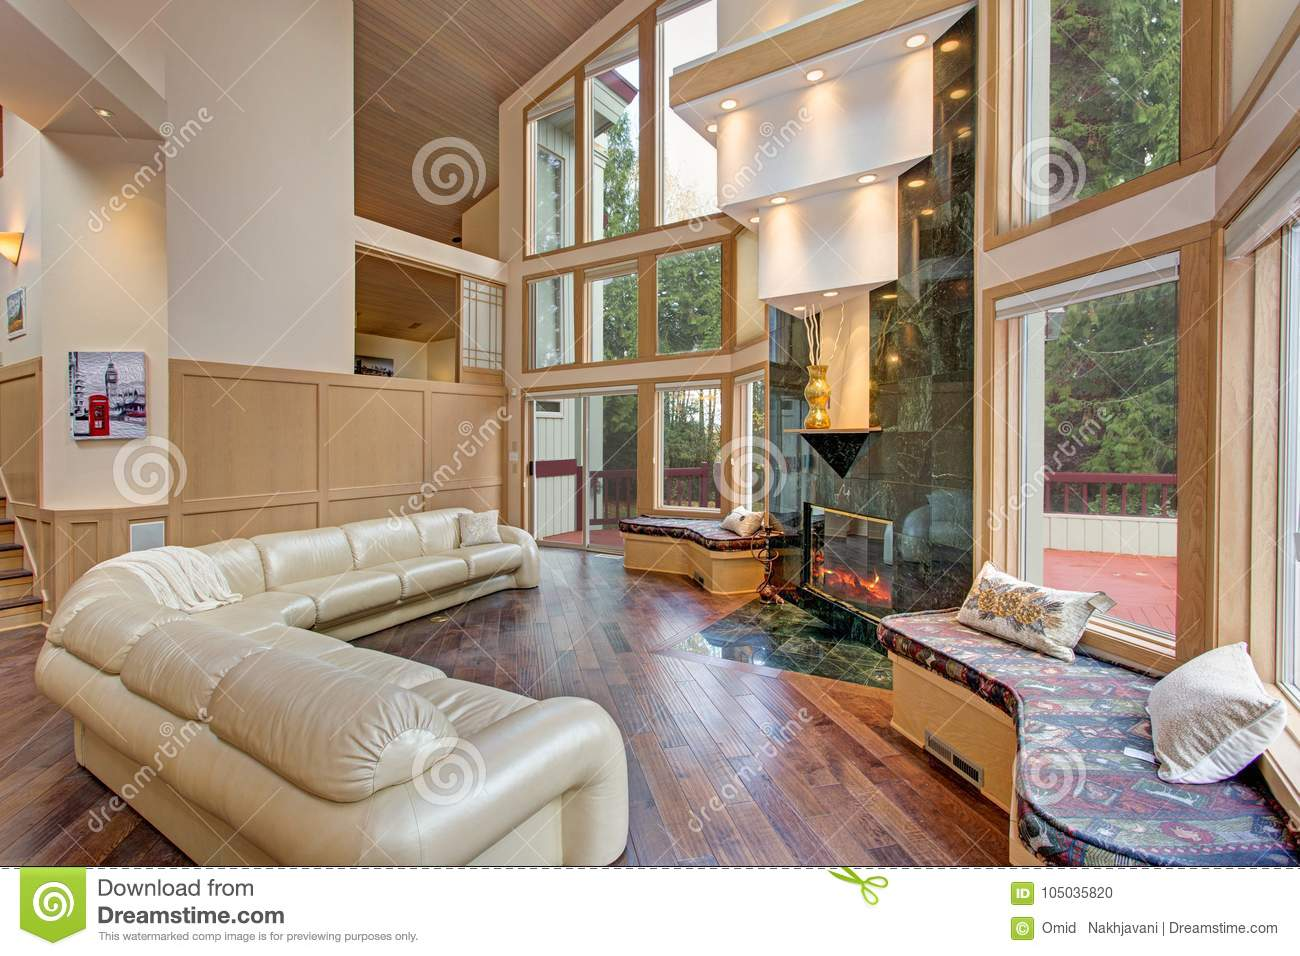 Luxurious Master Bedroom With Vaulted Ceiling Stock Photo